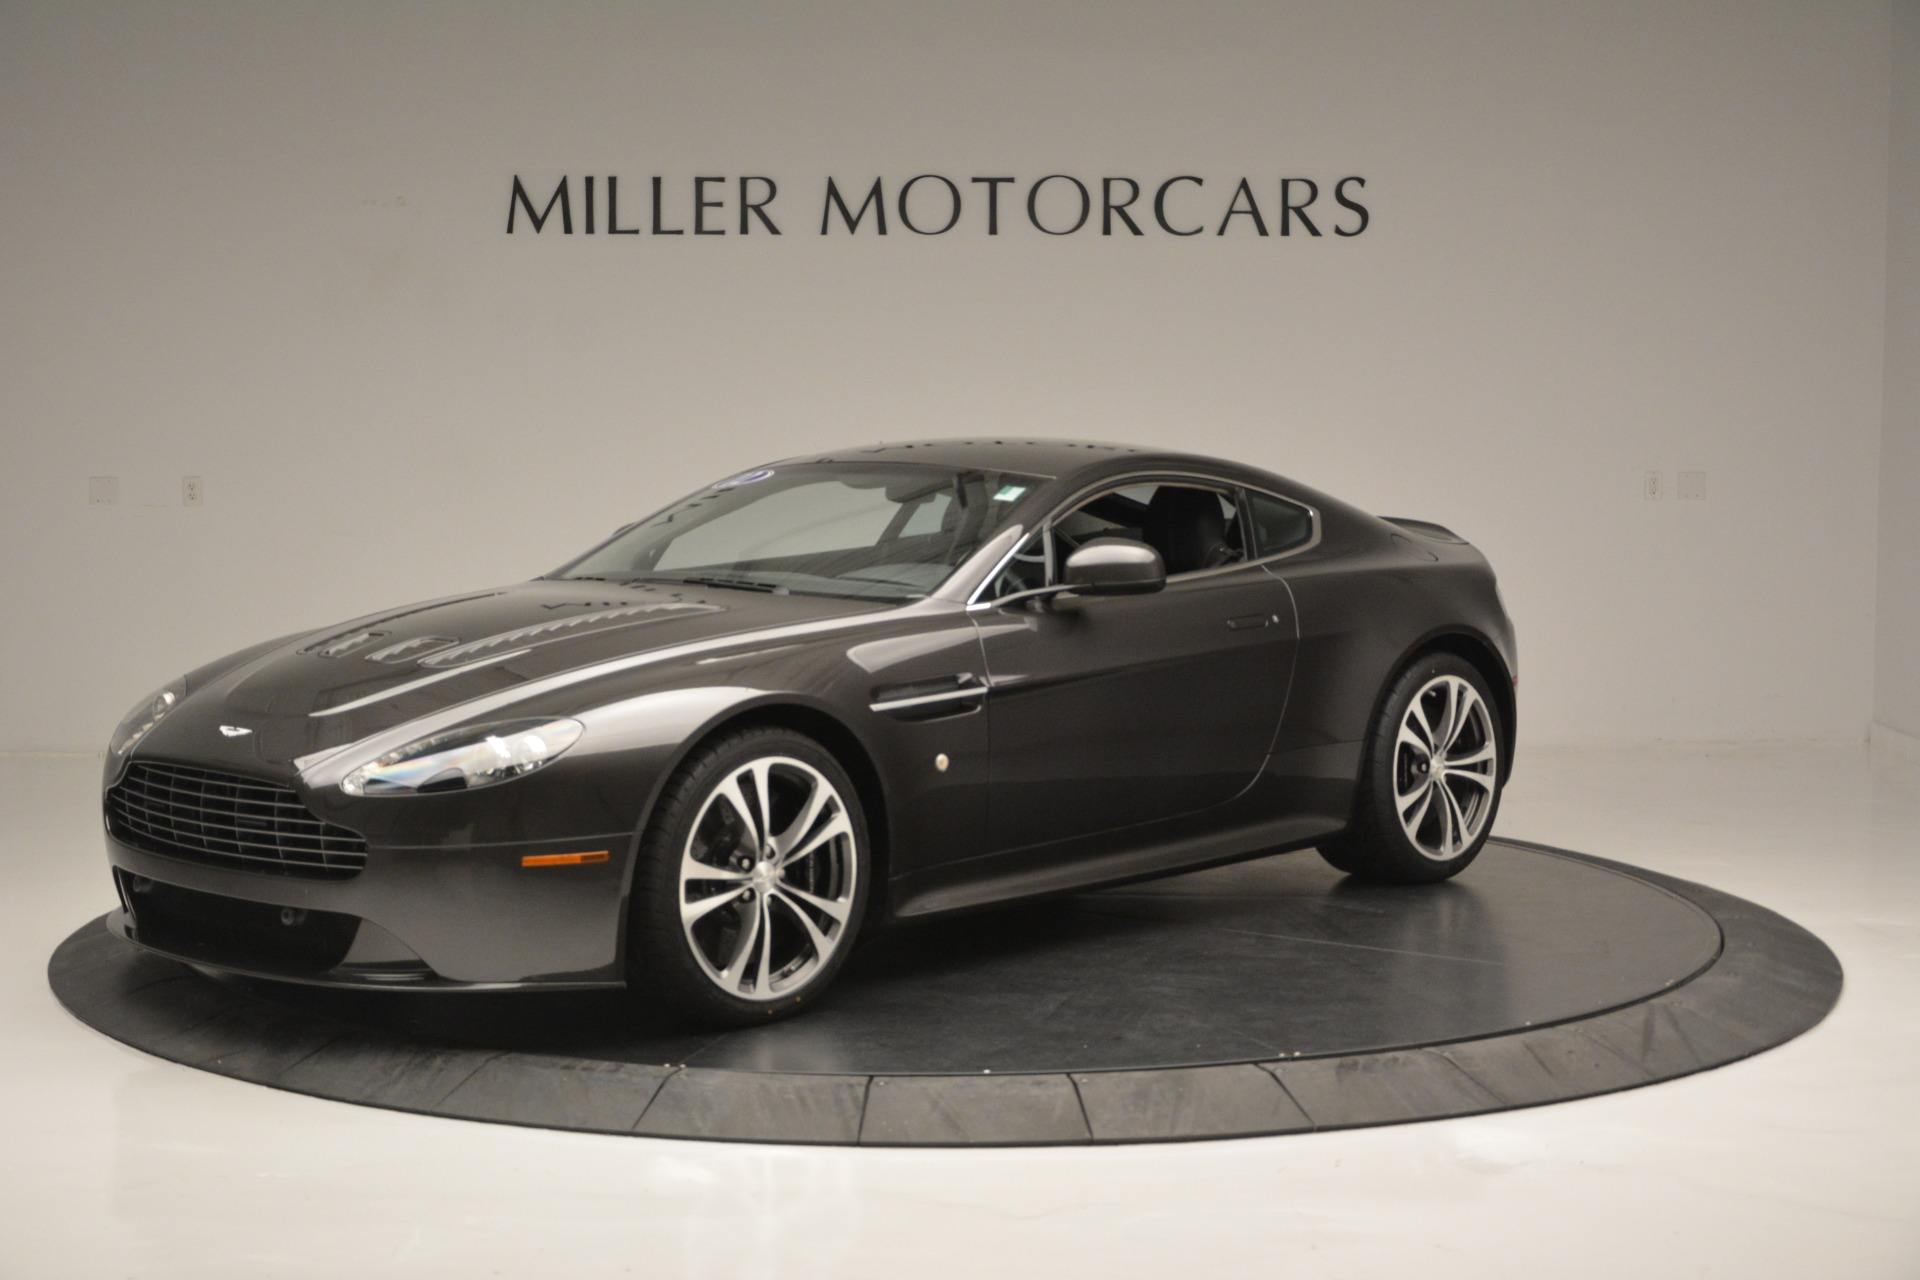 2012 Aston Martin V12 Vantage Stock 7425 for sale near Westport